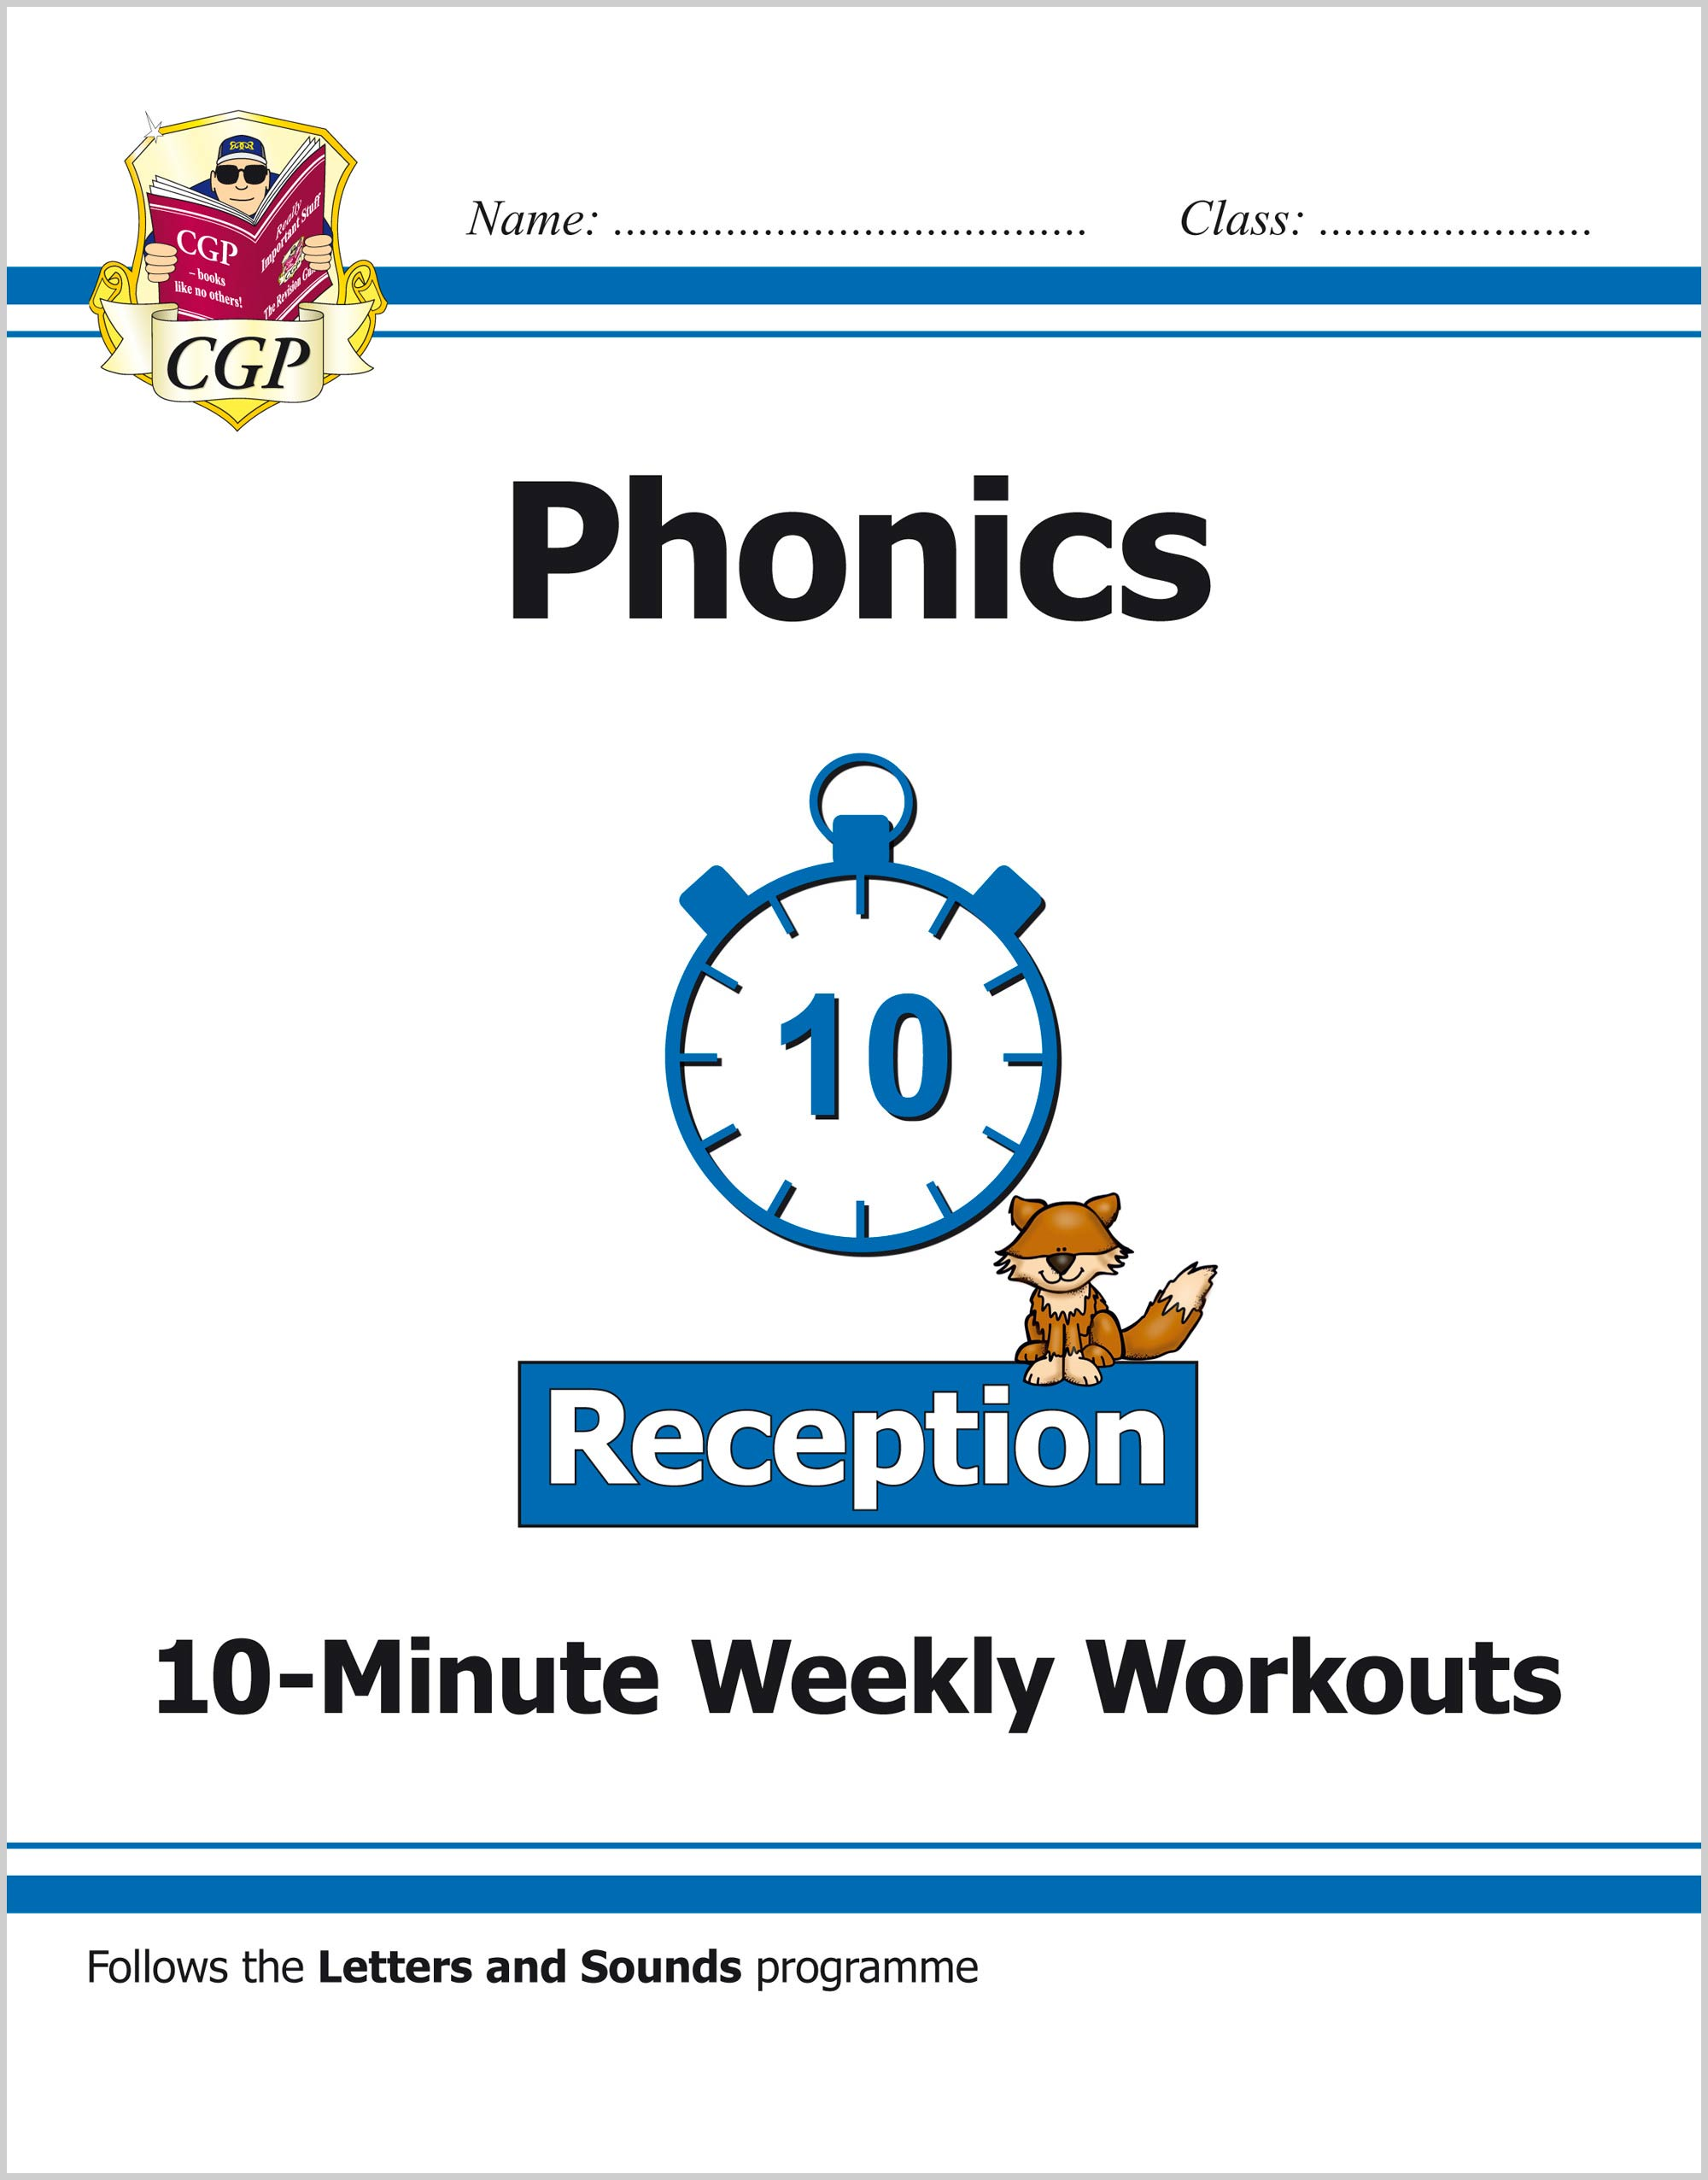 EROXW11 - English 10-Minute Weekly Workouts: Phonics - Reception